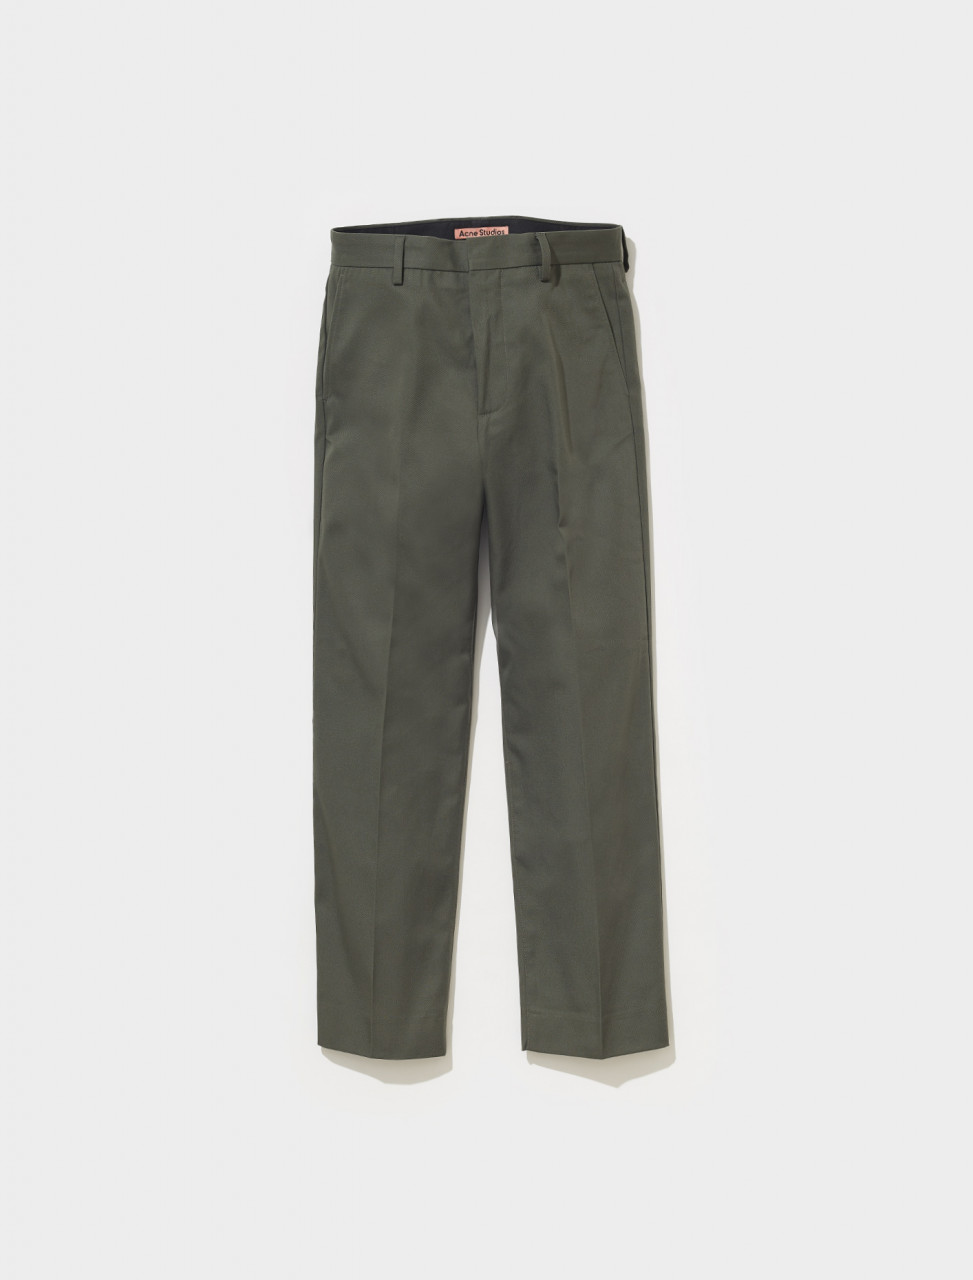 BK0423 AA7 FN MN TROU000515 ACNE STUDIOS AYONNE COTTON MIX TWILL TROUSERS IN STONE GREY